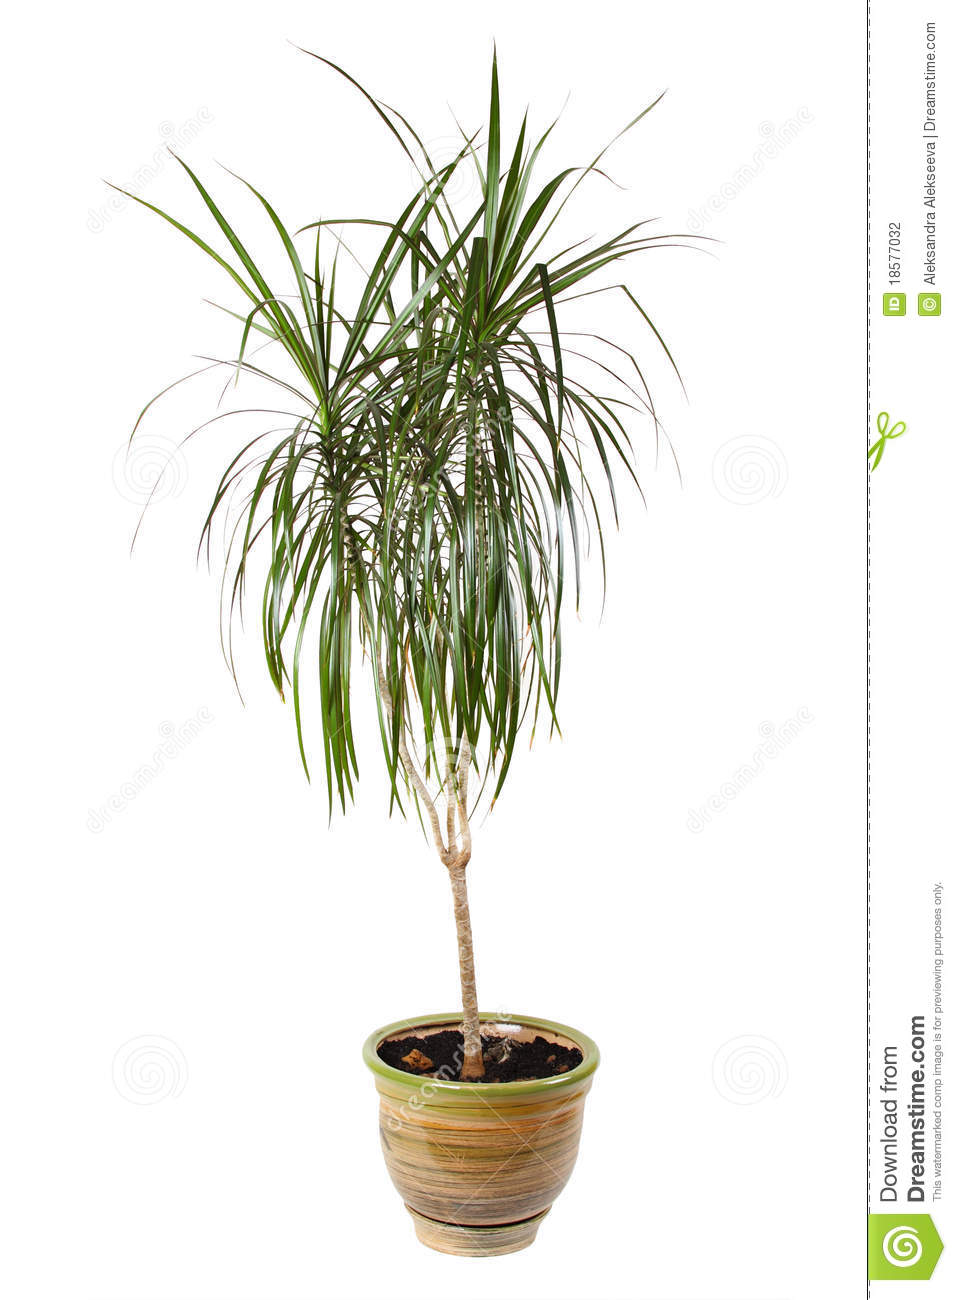 houseplant dracaena palm in flowerpot stock photography image 18577032. Black Bedroom Furniture Sets. Home Design Ideas